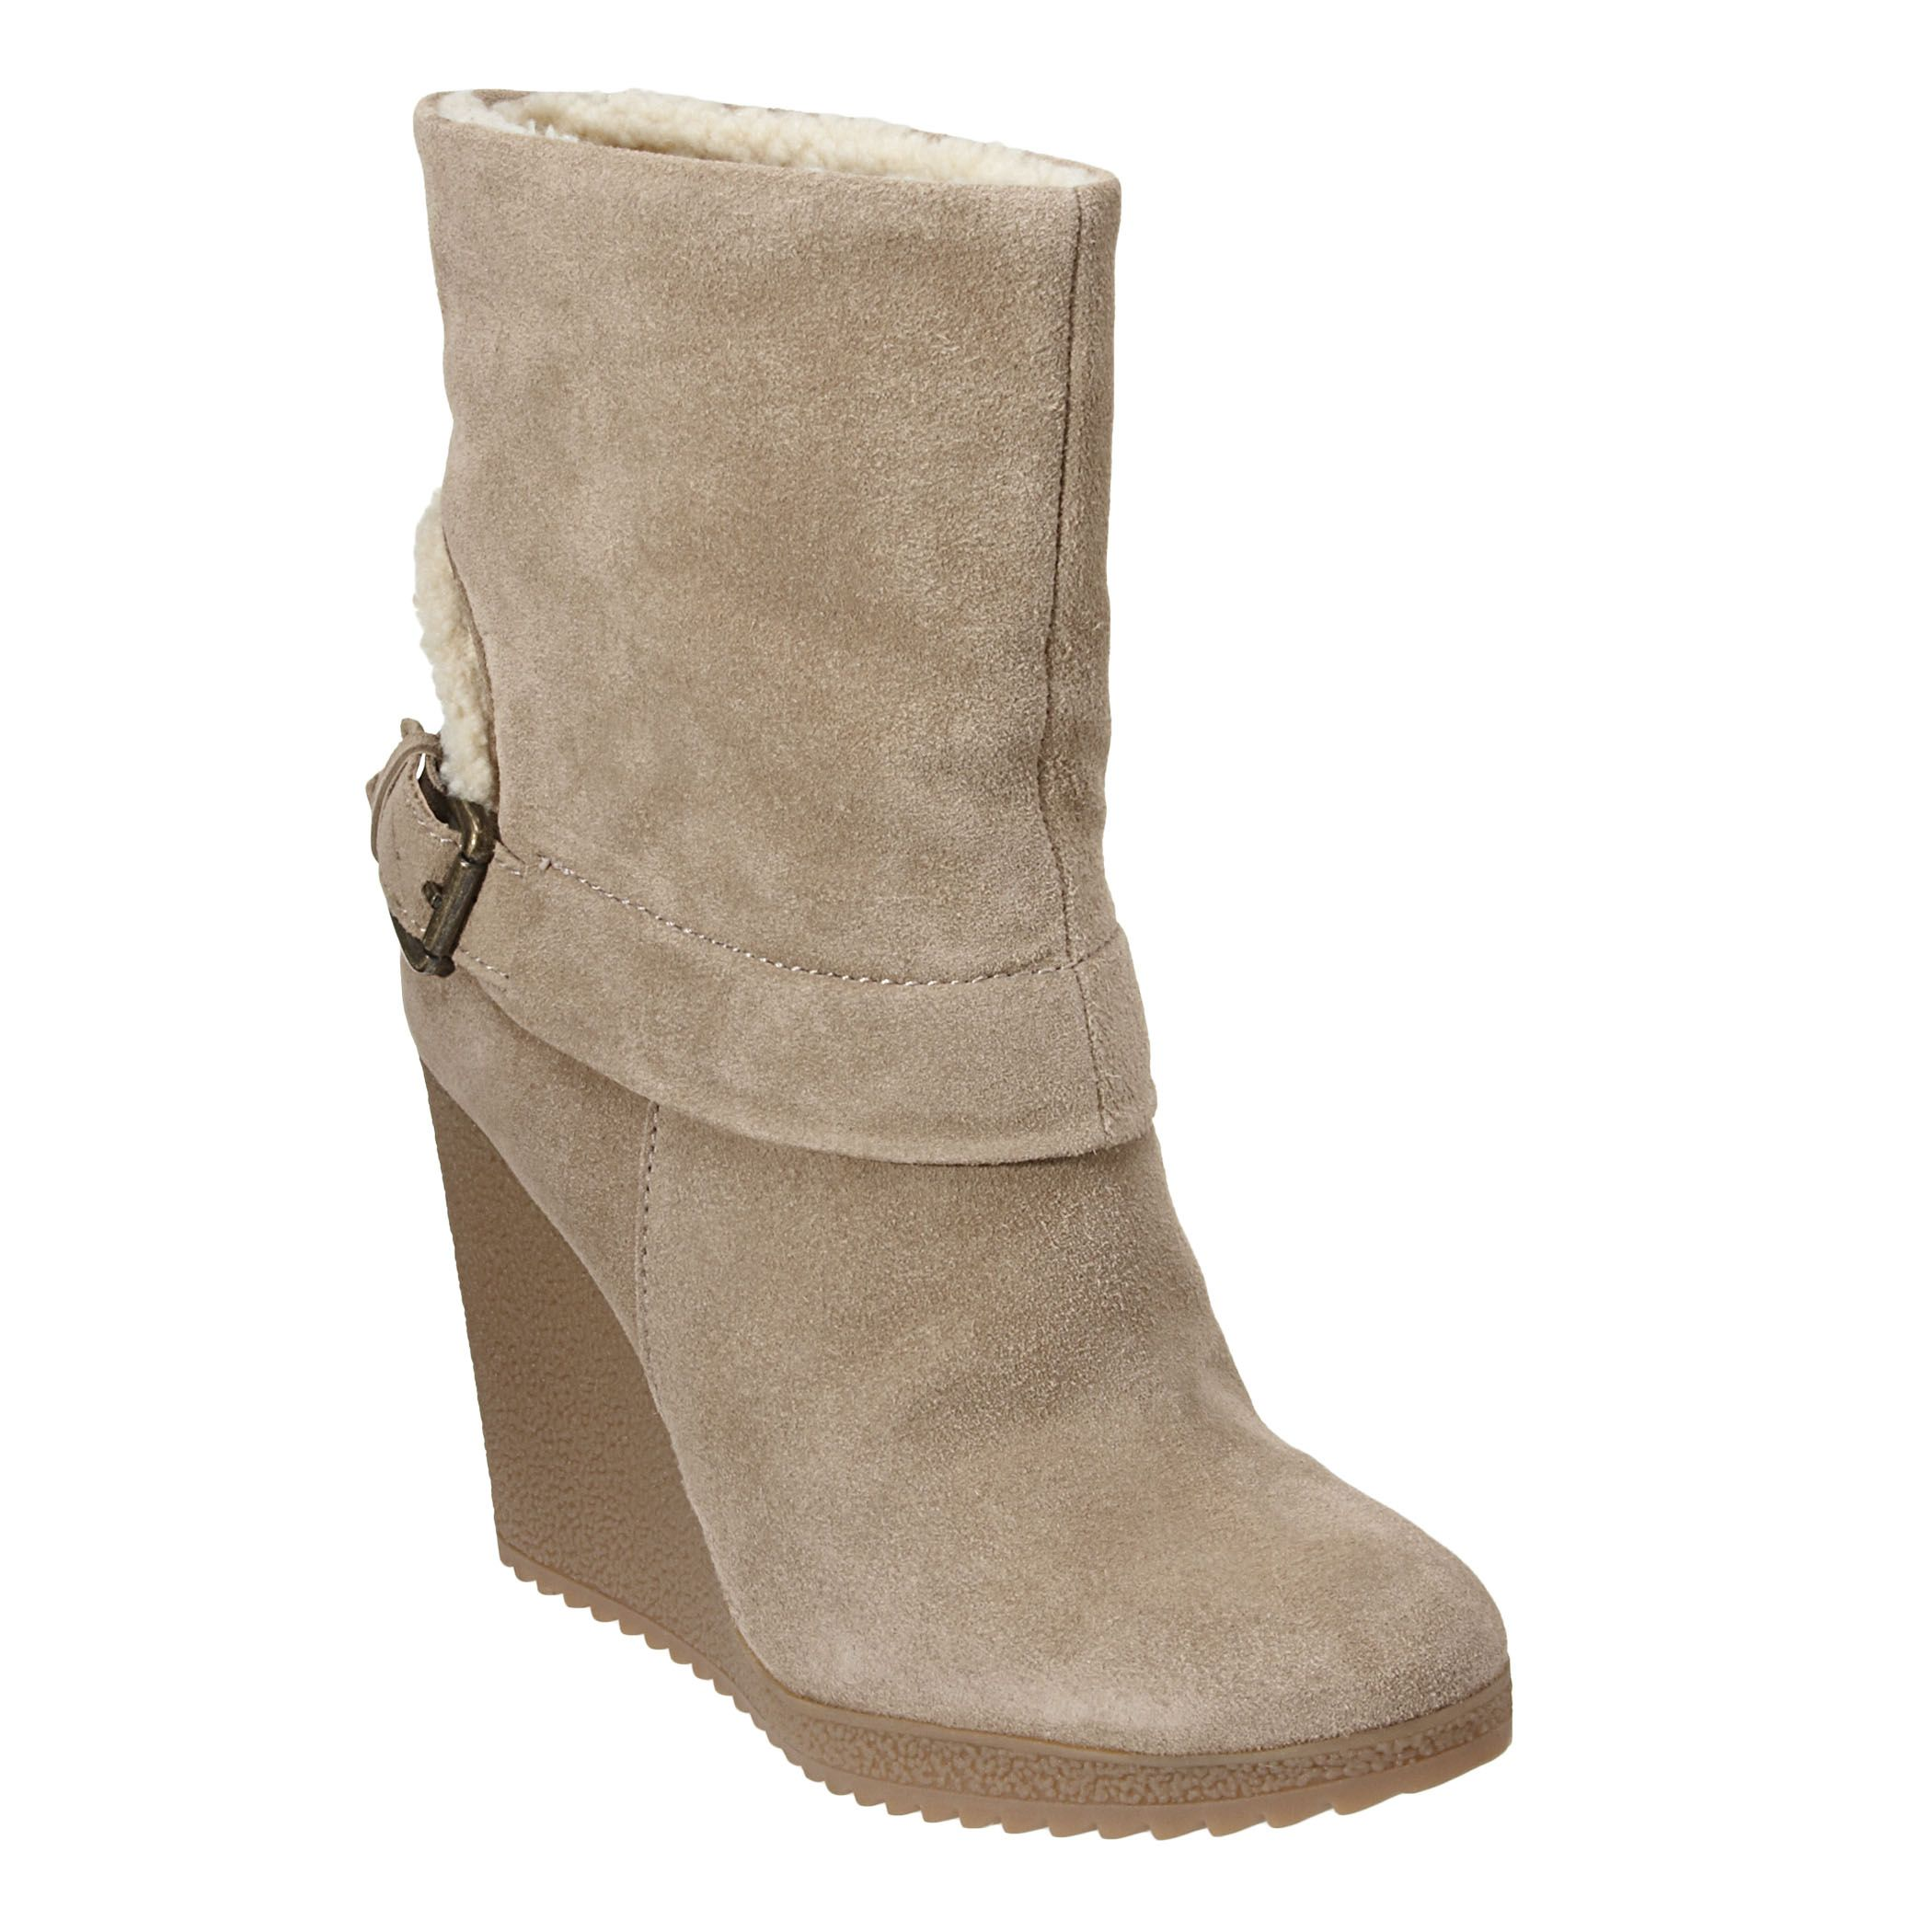 "Almond toe bootie with faux shearling accent.  Buckle detail.  Rubber 3 3/4"" wedge and 1/2"" platform."